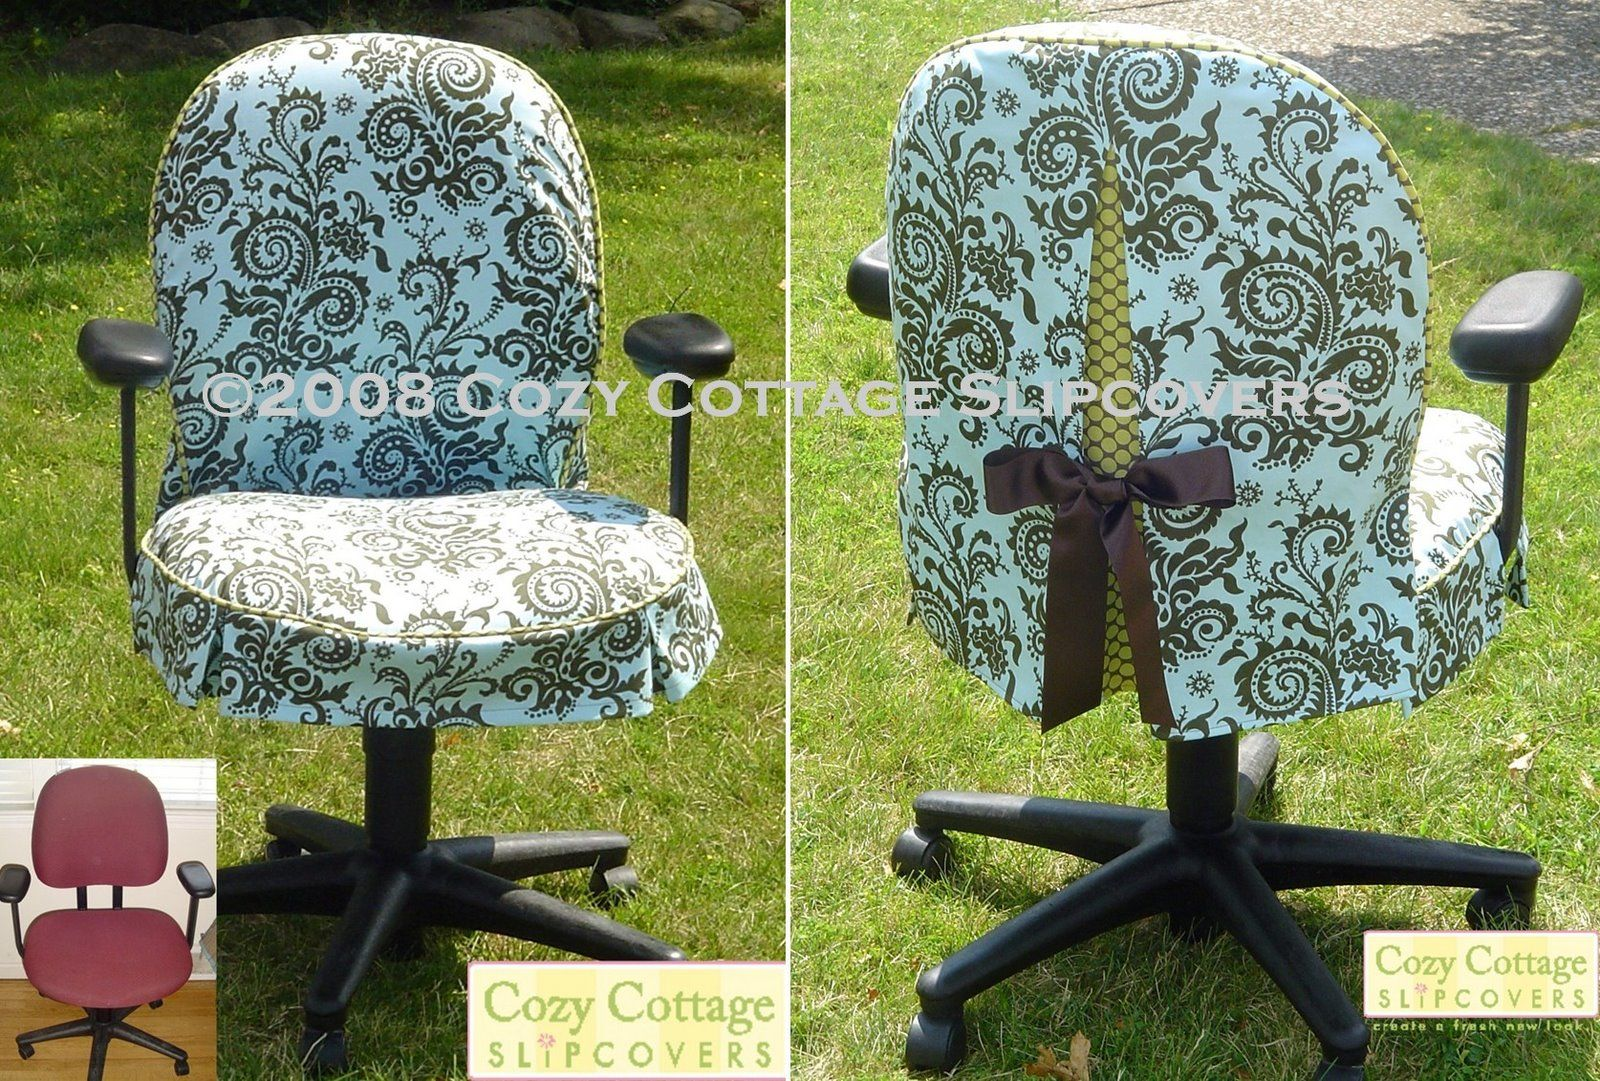 20 DIY Slipcovers You Can Make! Slipcovers for chairs